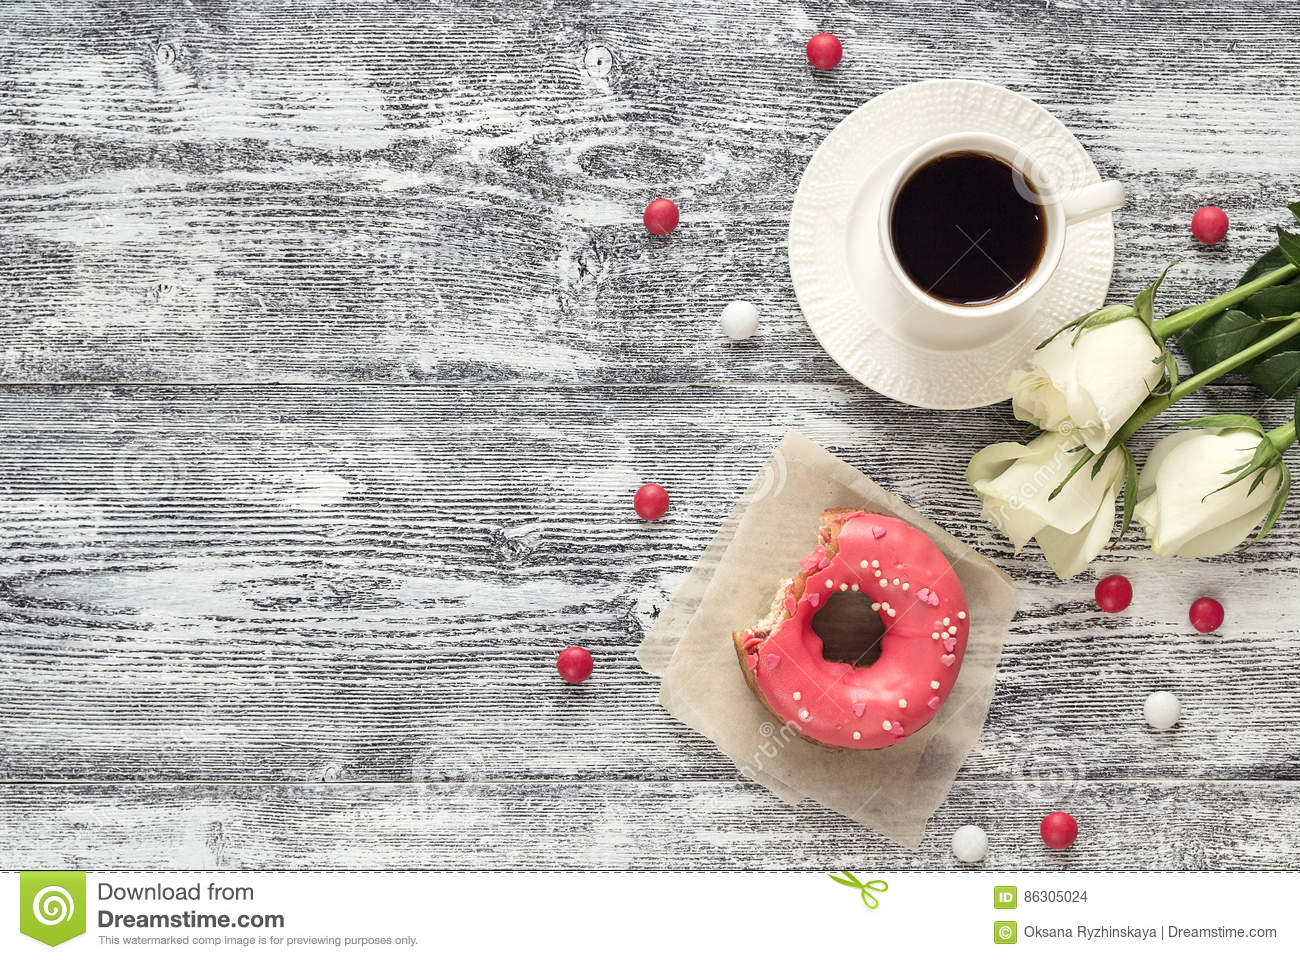 Background with cup of coffee, donut and white roses on a gray